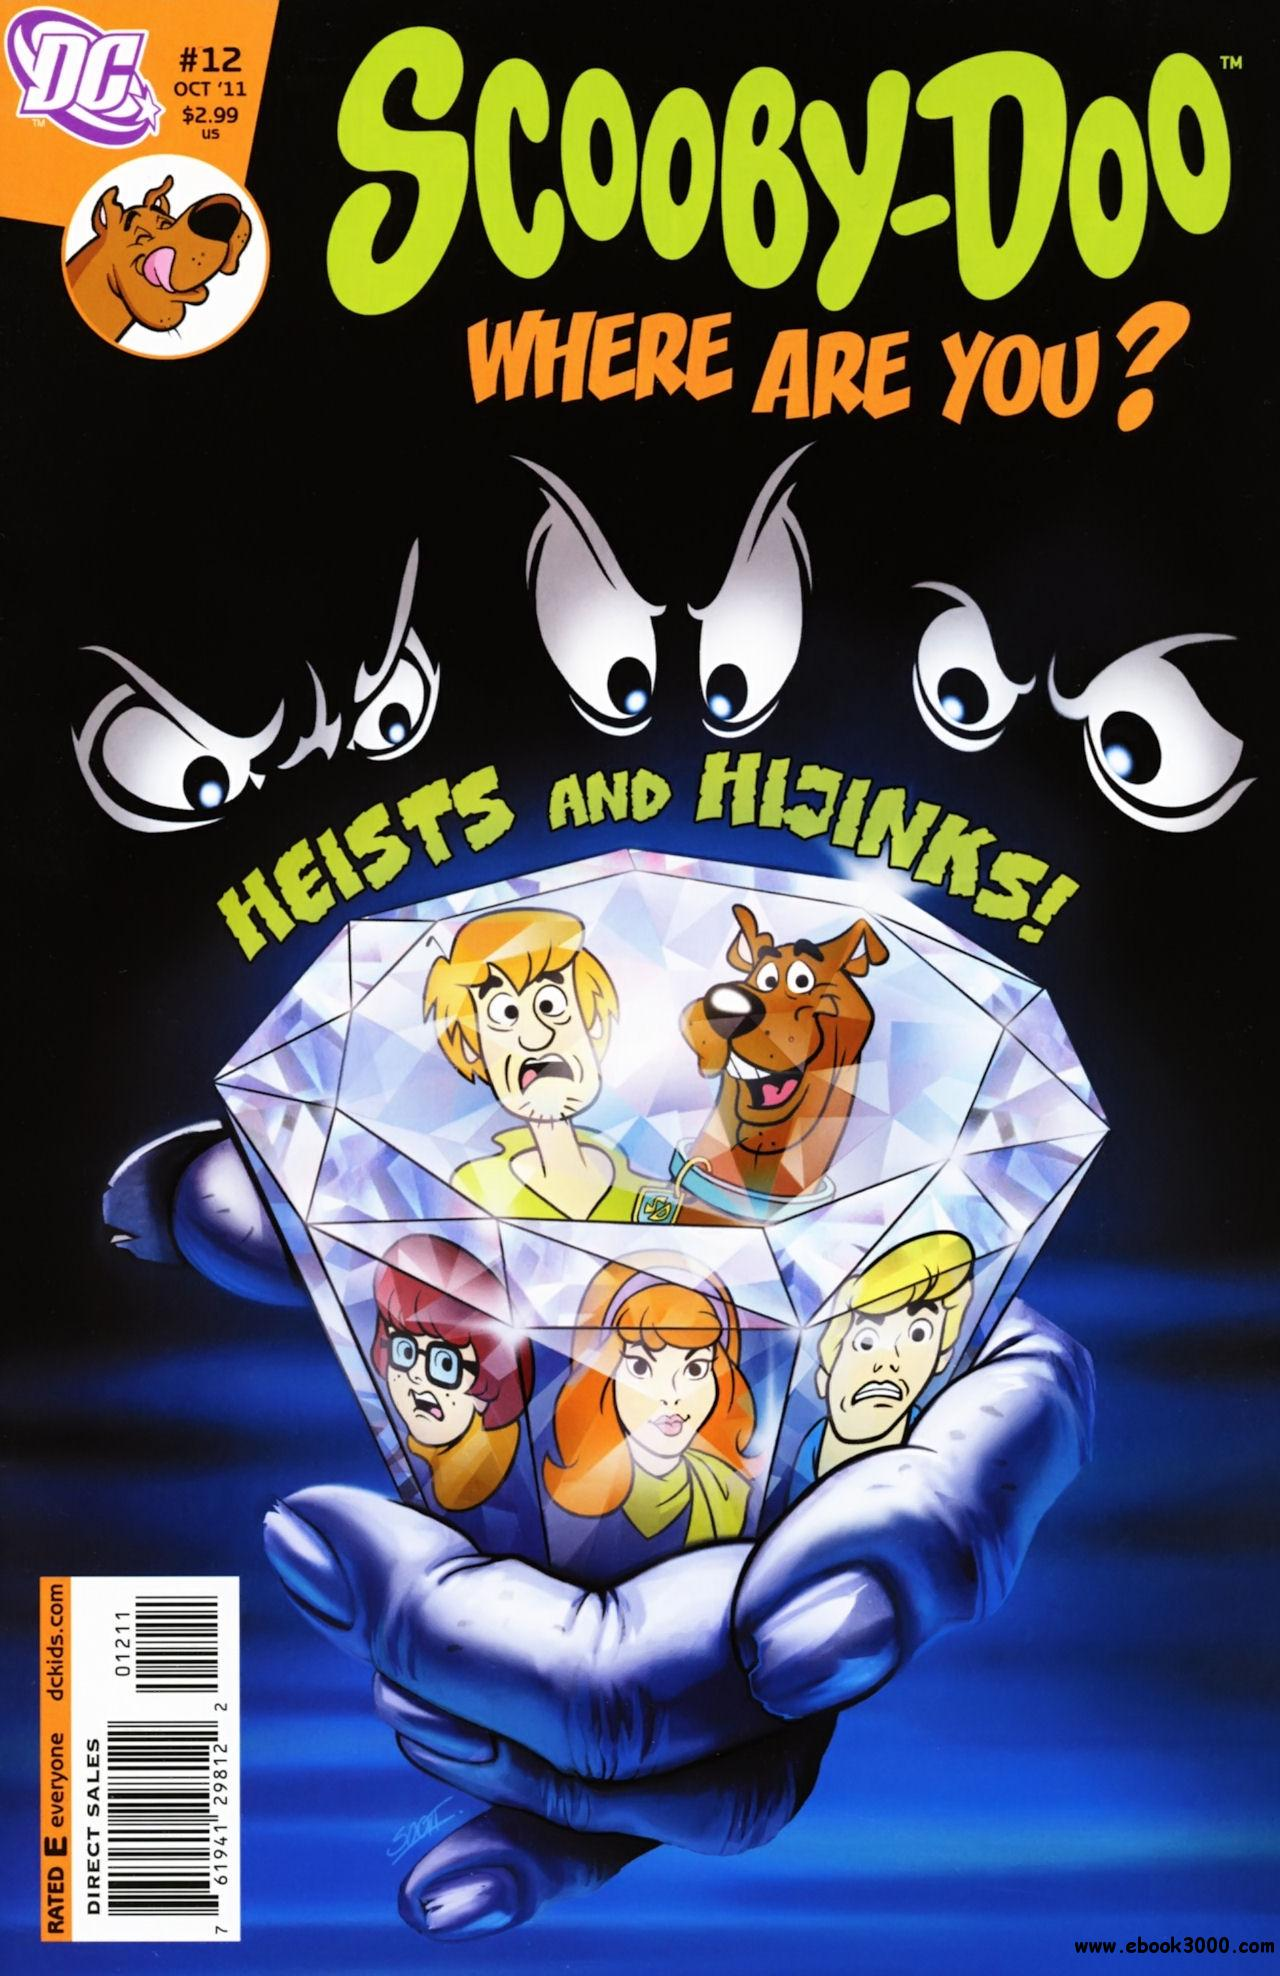 Scooby-Doo - Where Are You #12 (2011) free download